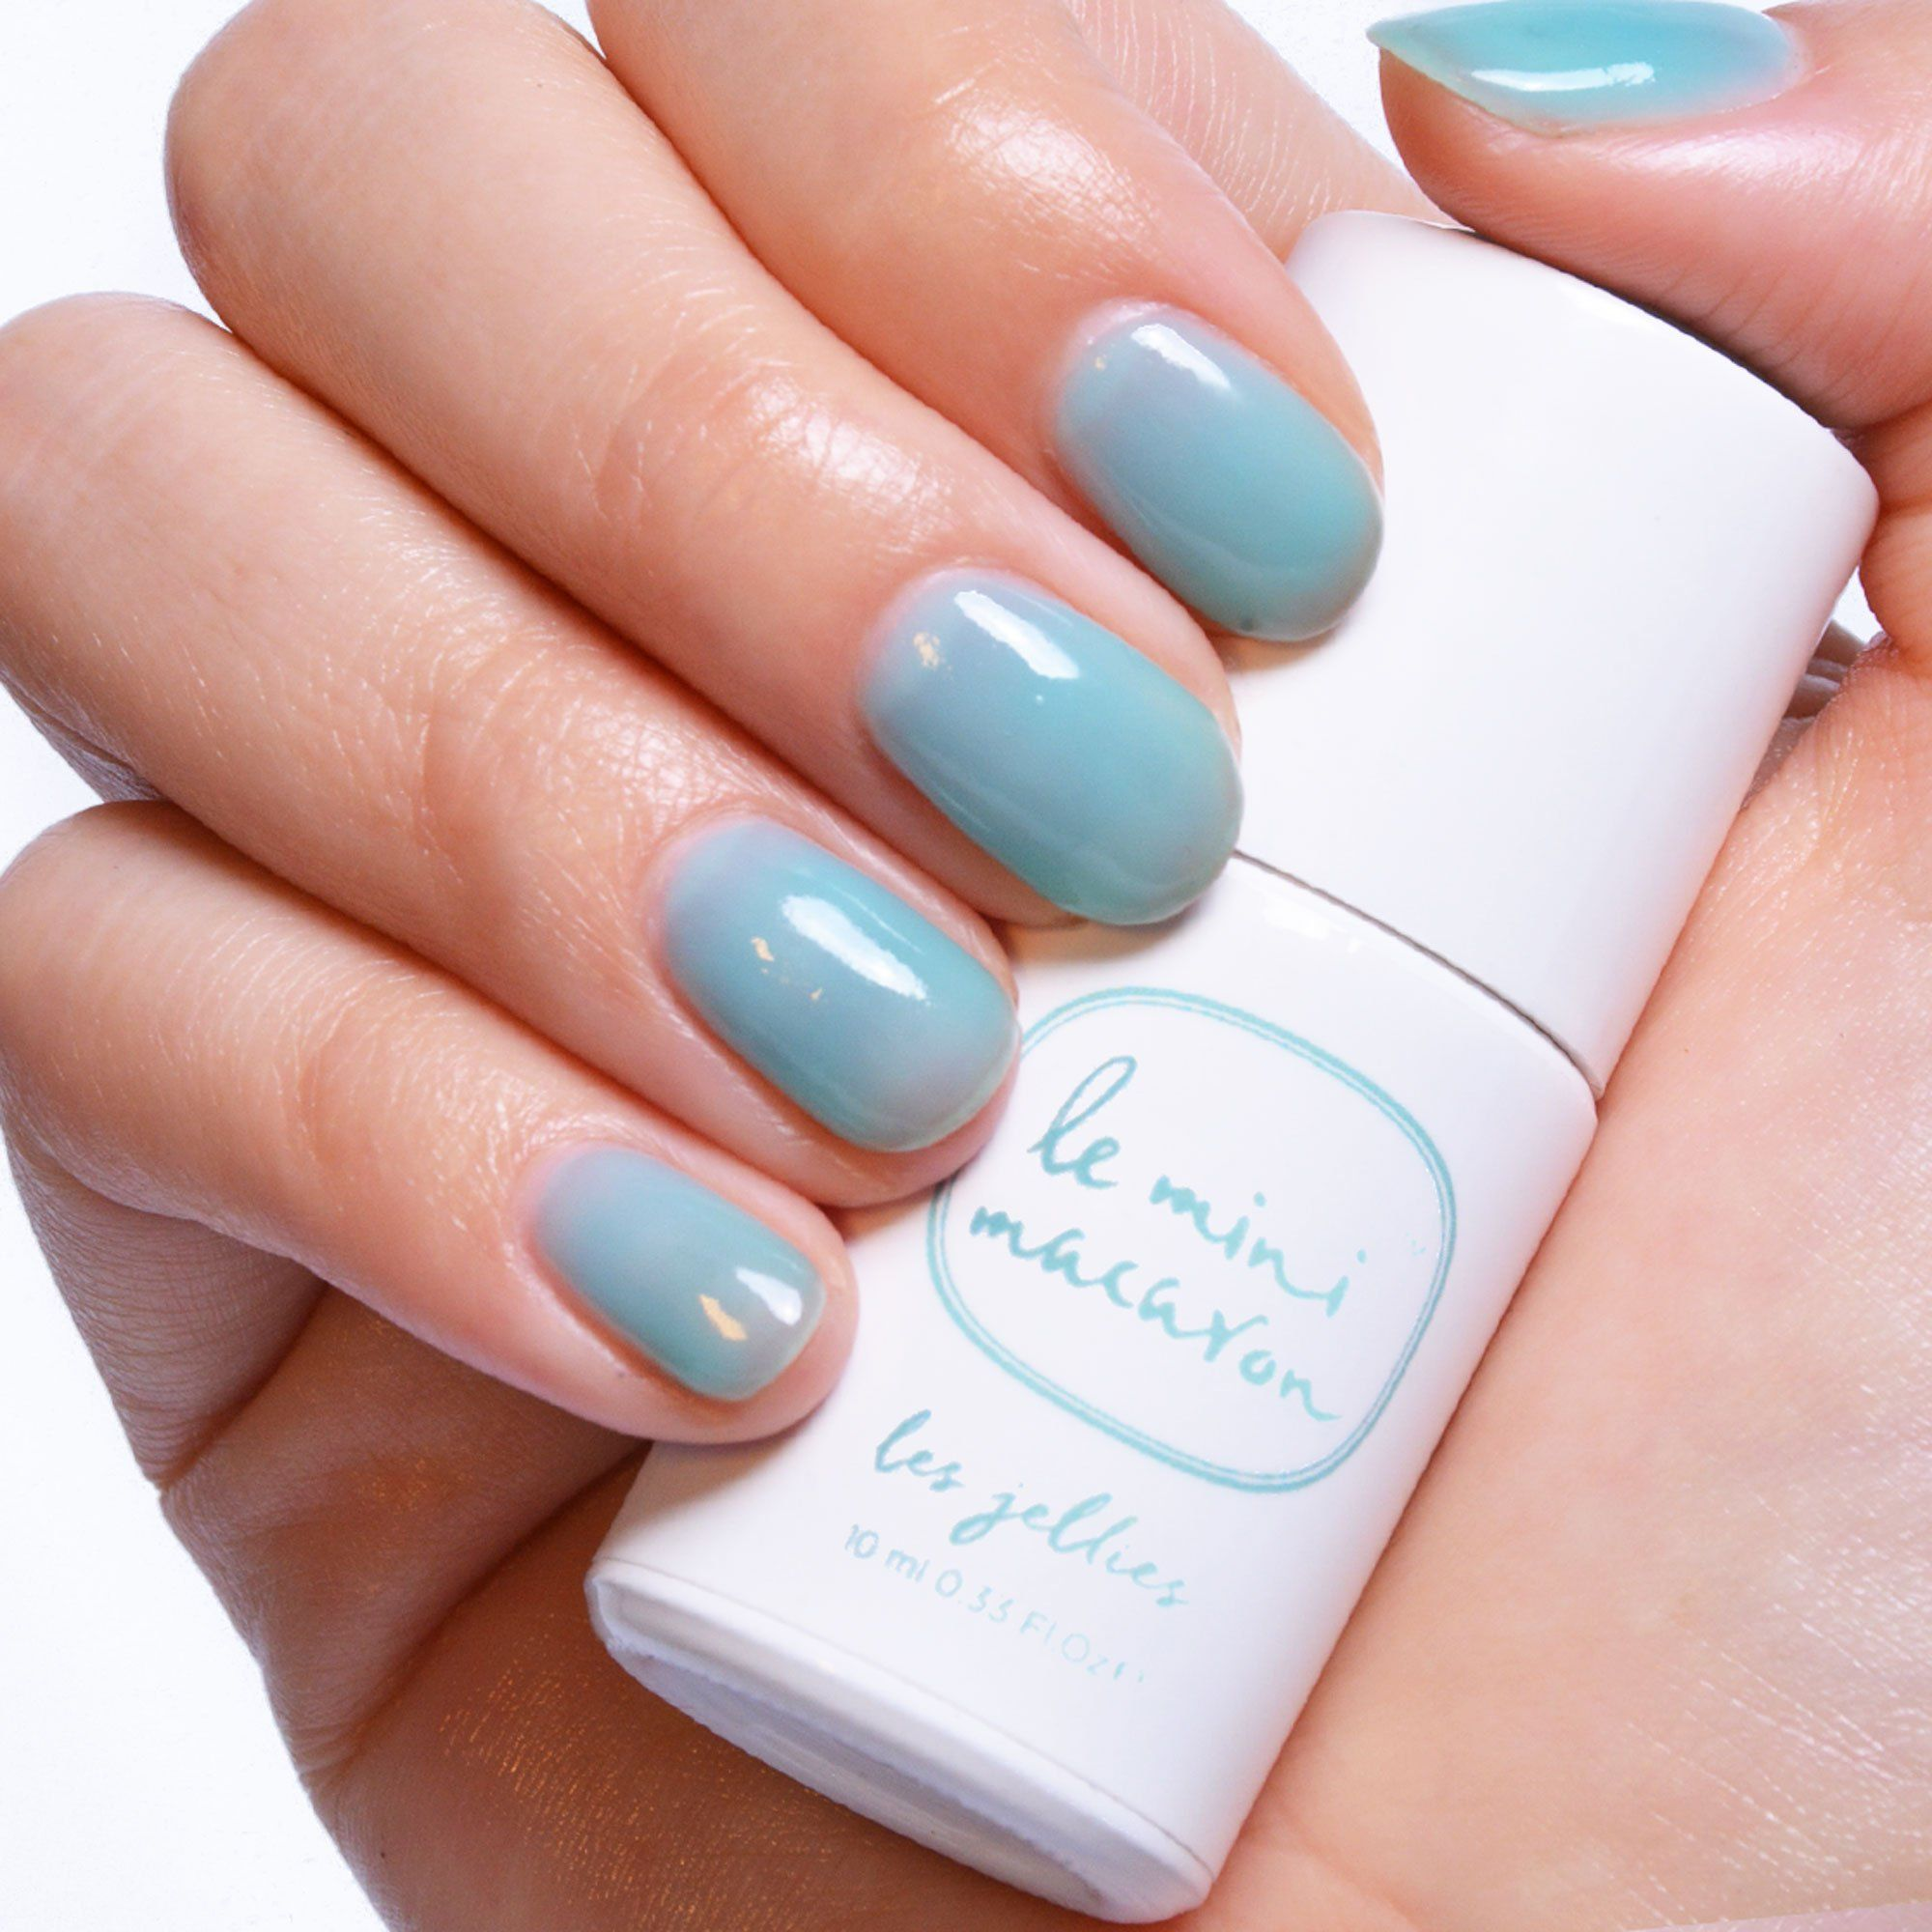 Les Jellies - Mint Jelly Gel Polish Le Mini Macaron Europe